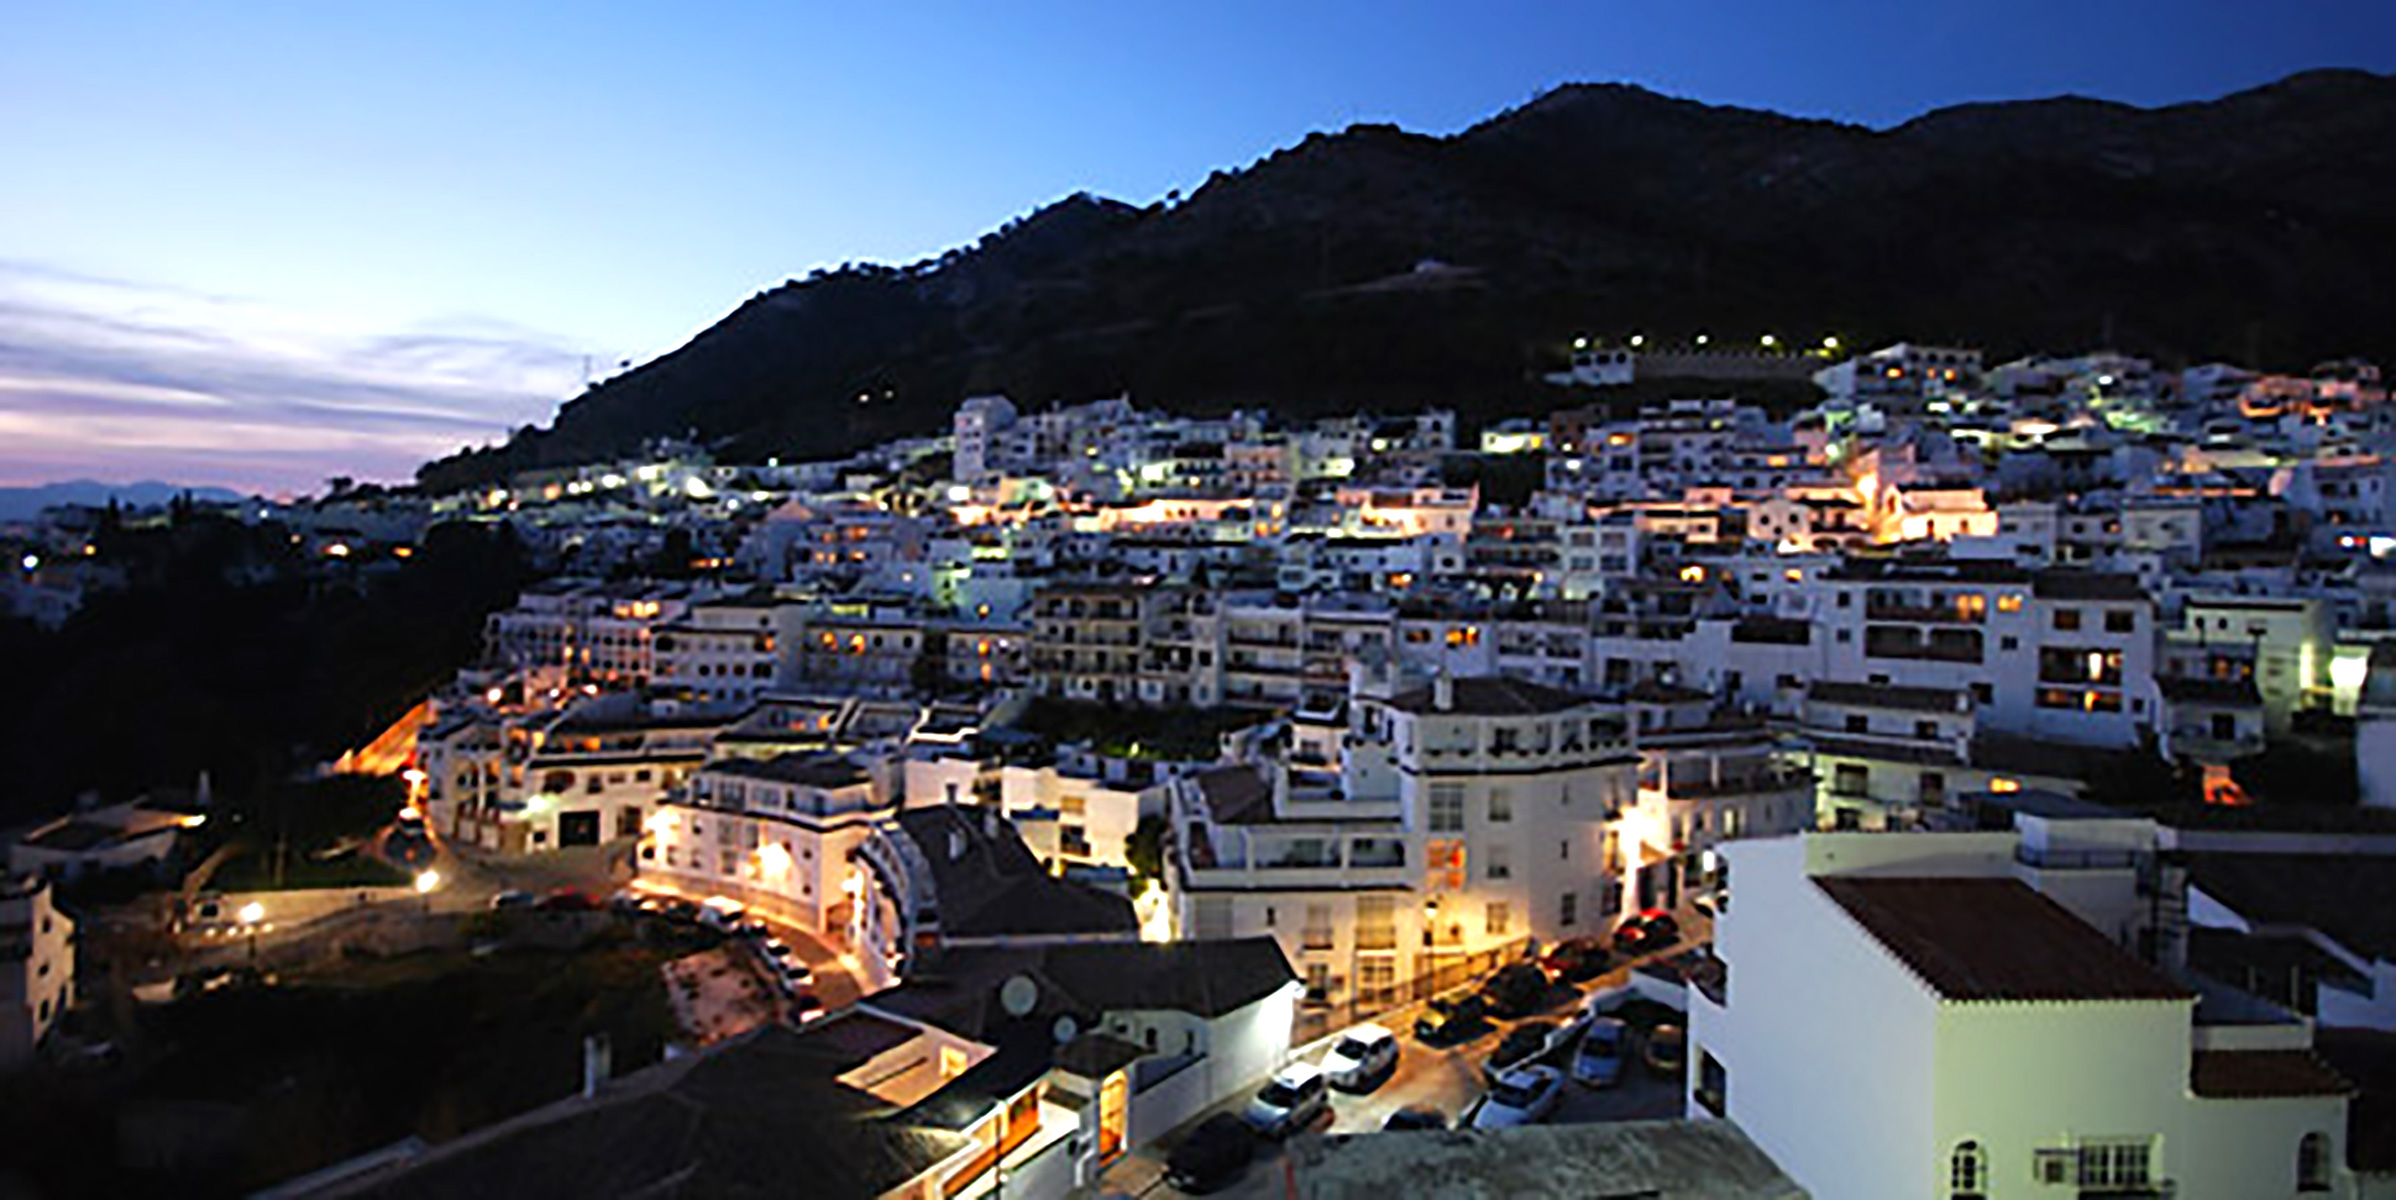 Mijas Village/Pueblo by night